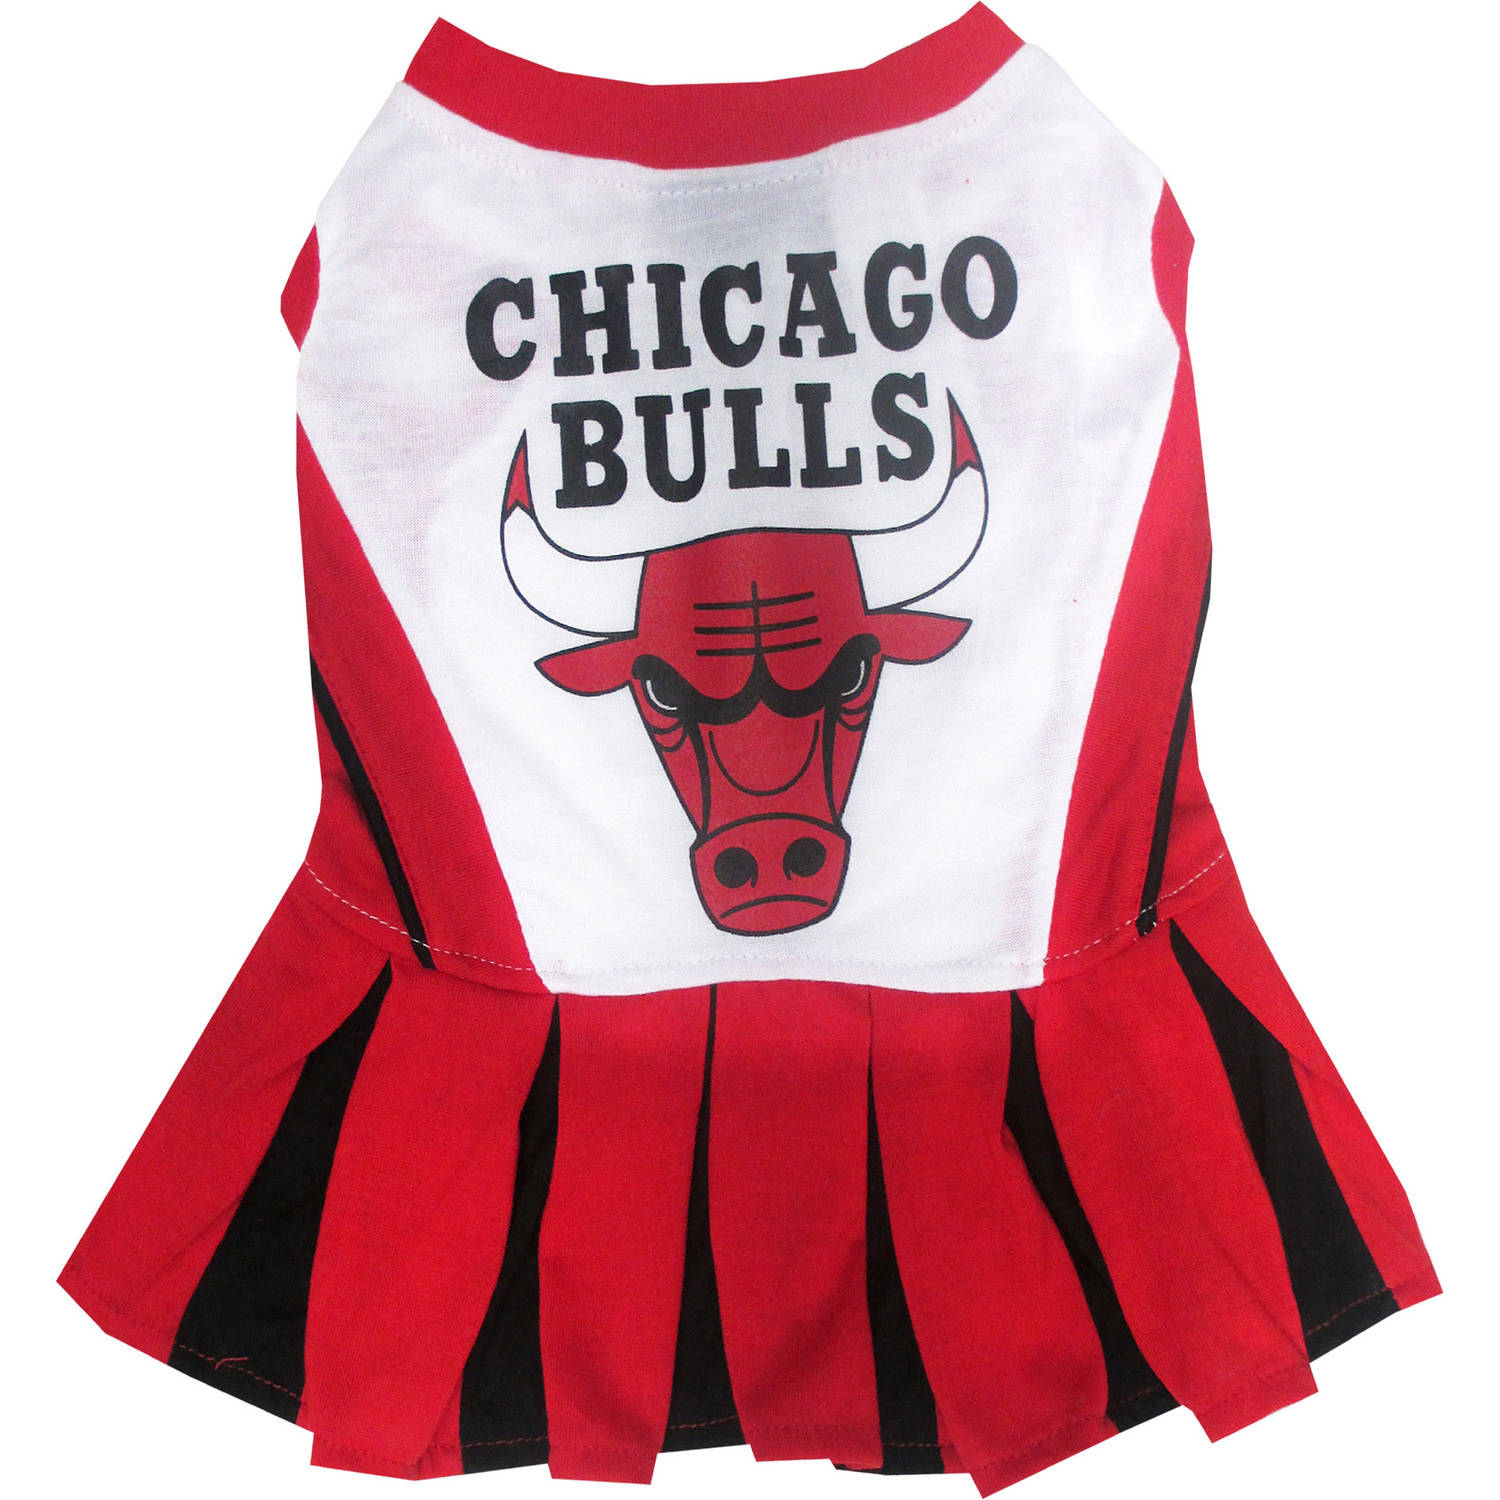 Chicago Bulls Dog Cheerleader Outfit